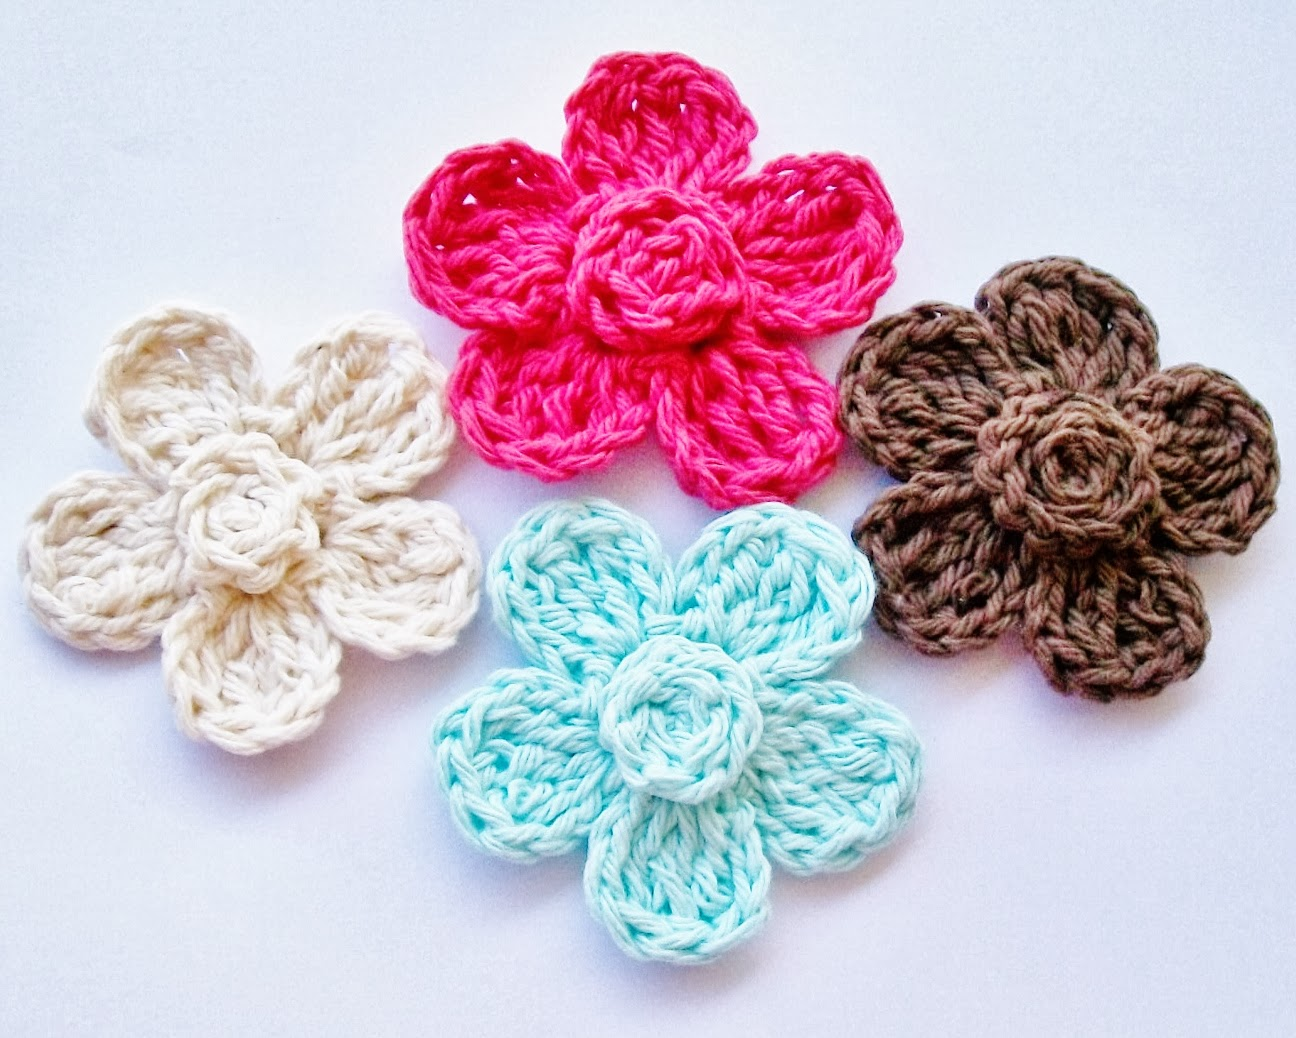 Flowers online 2018 crochet flowers for beginners flowers online crochet flowers for beginners these flowers are very beautiful here we offer a collection of beautiful cute charming funny and unique flower images izmirmasajfo